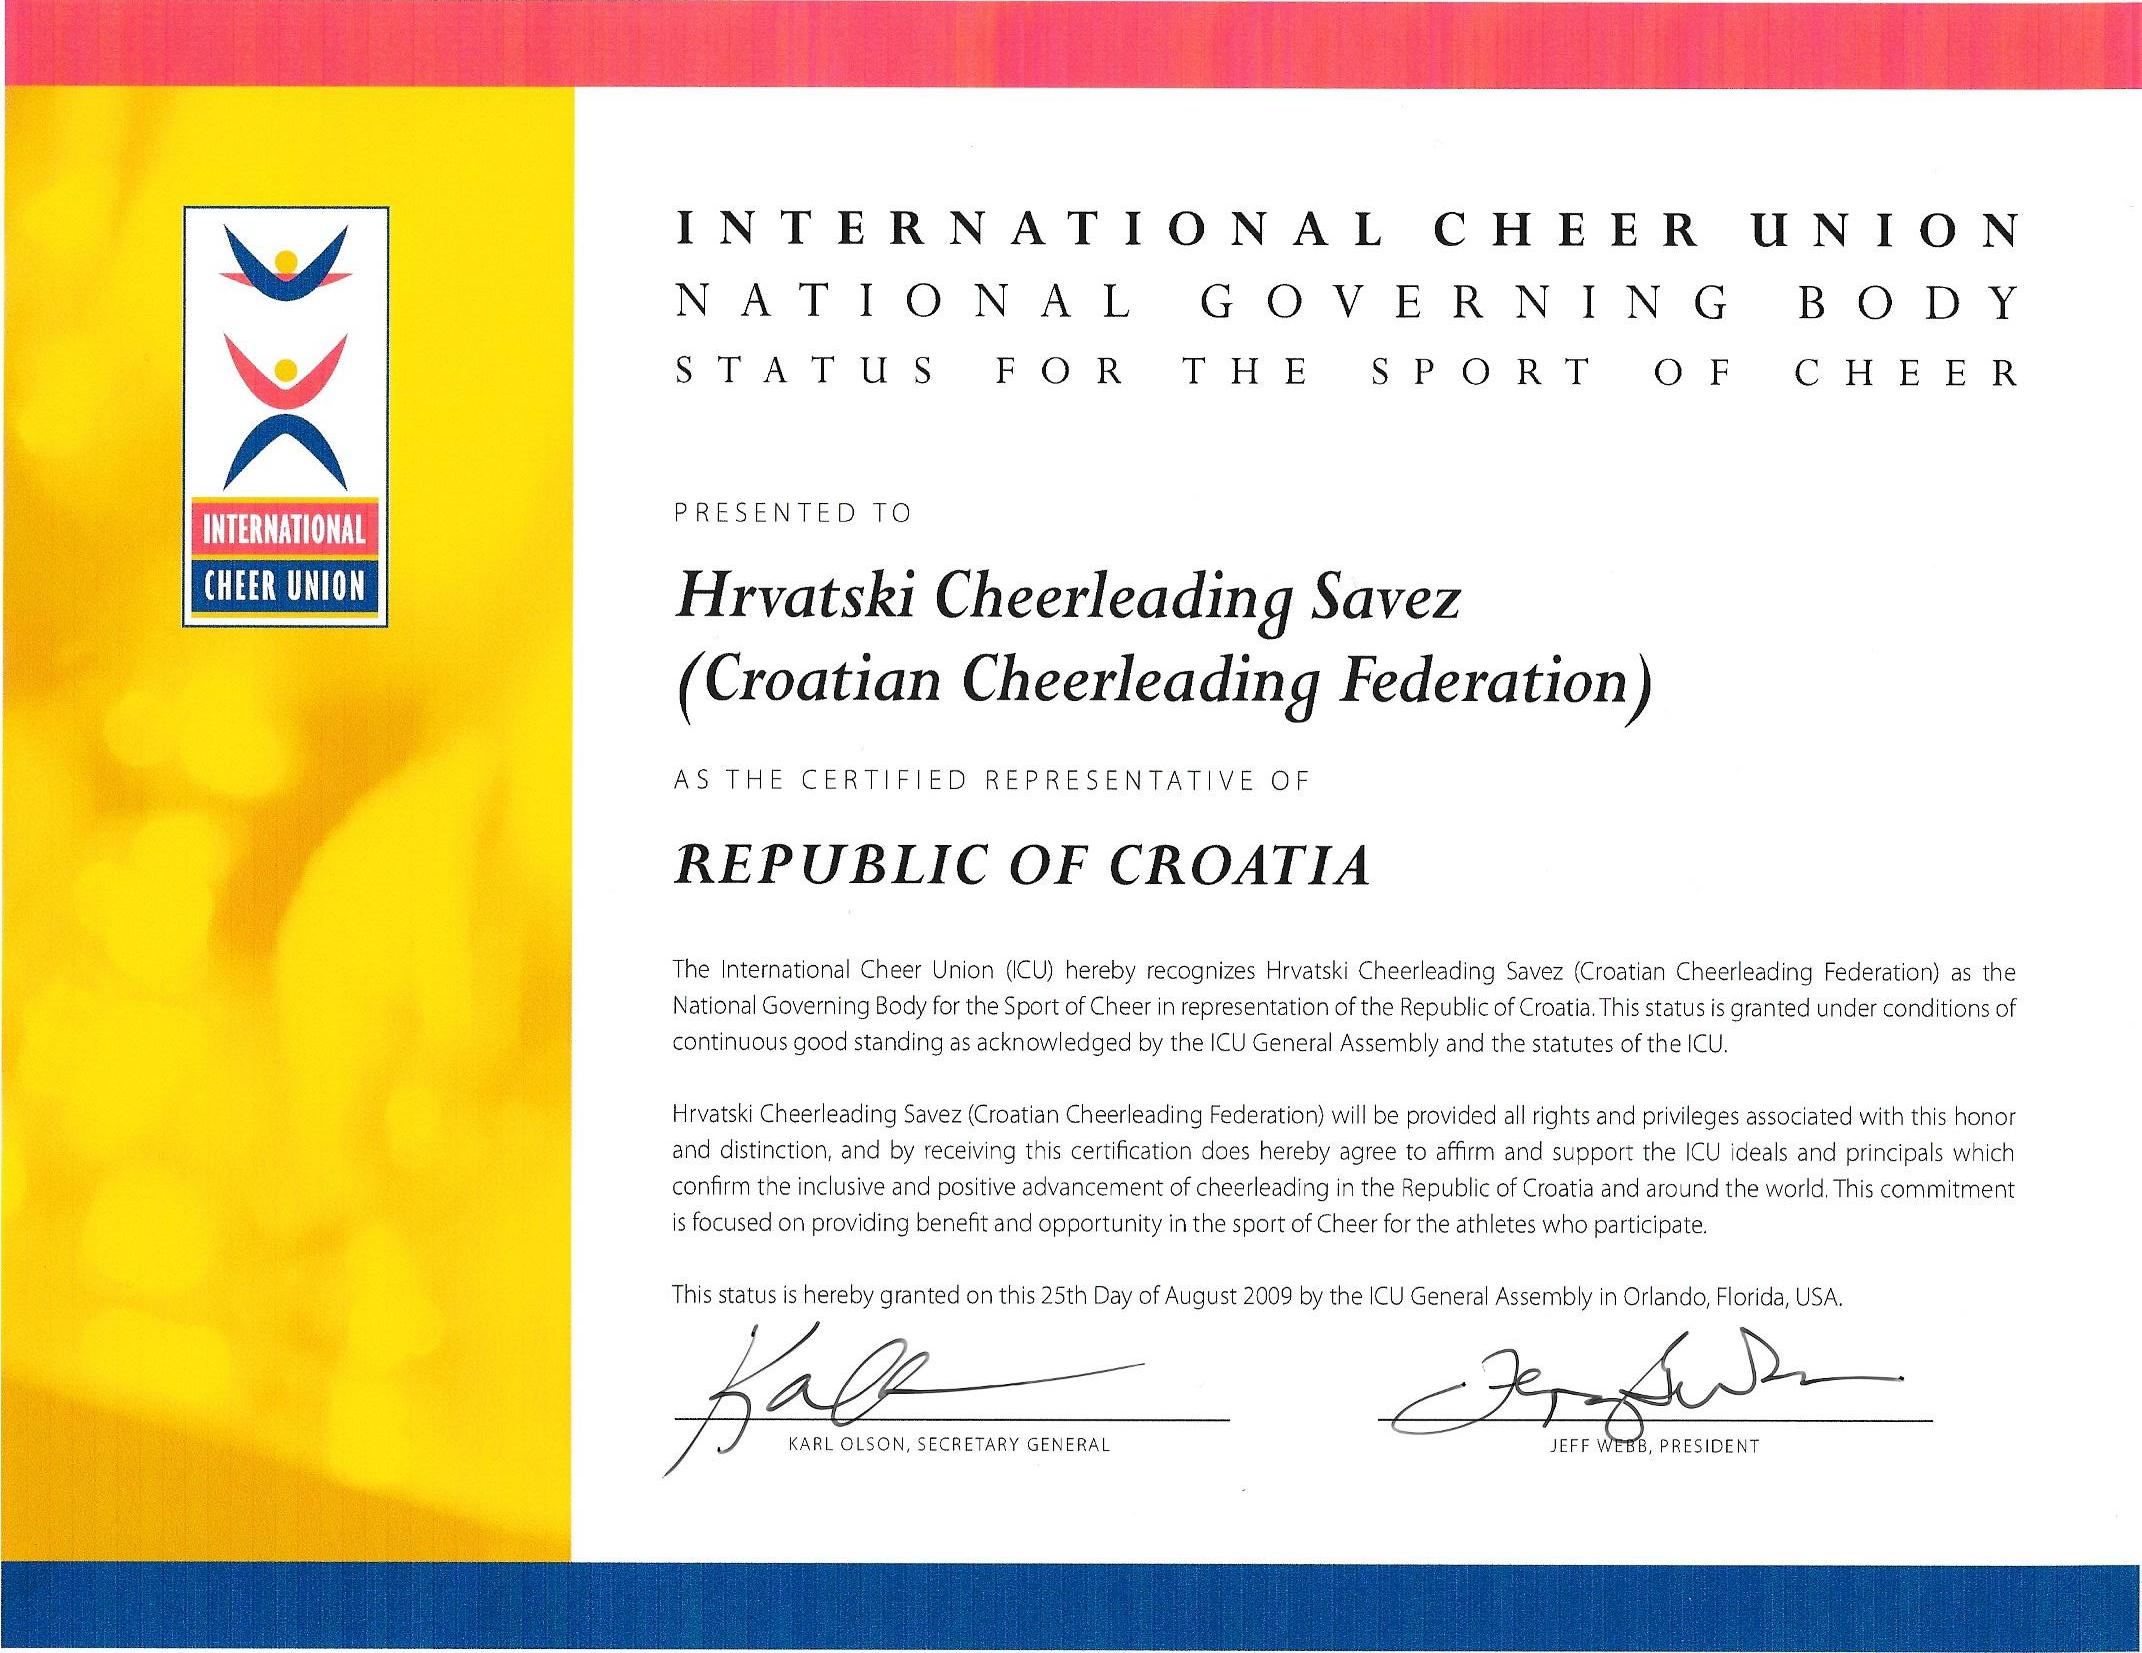 The recognized world governing body of cheerleading europe e mail officecheerleading icu recognition letter altavistaventures Gallery